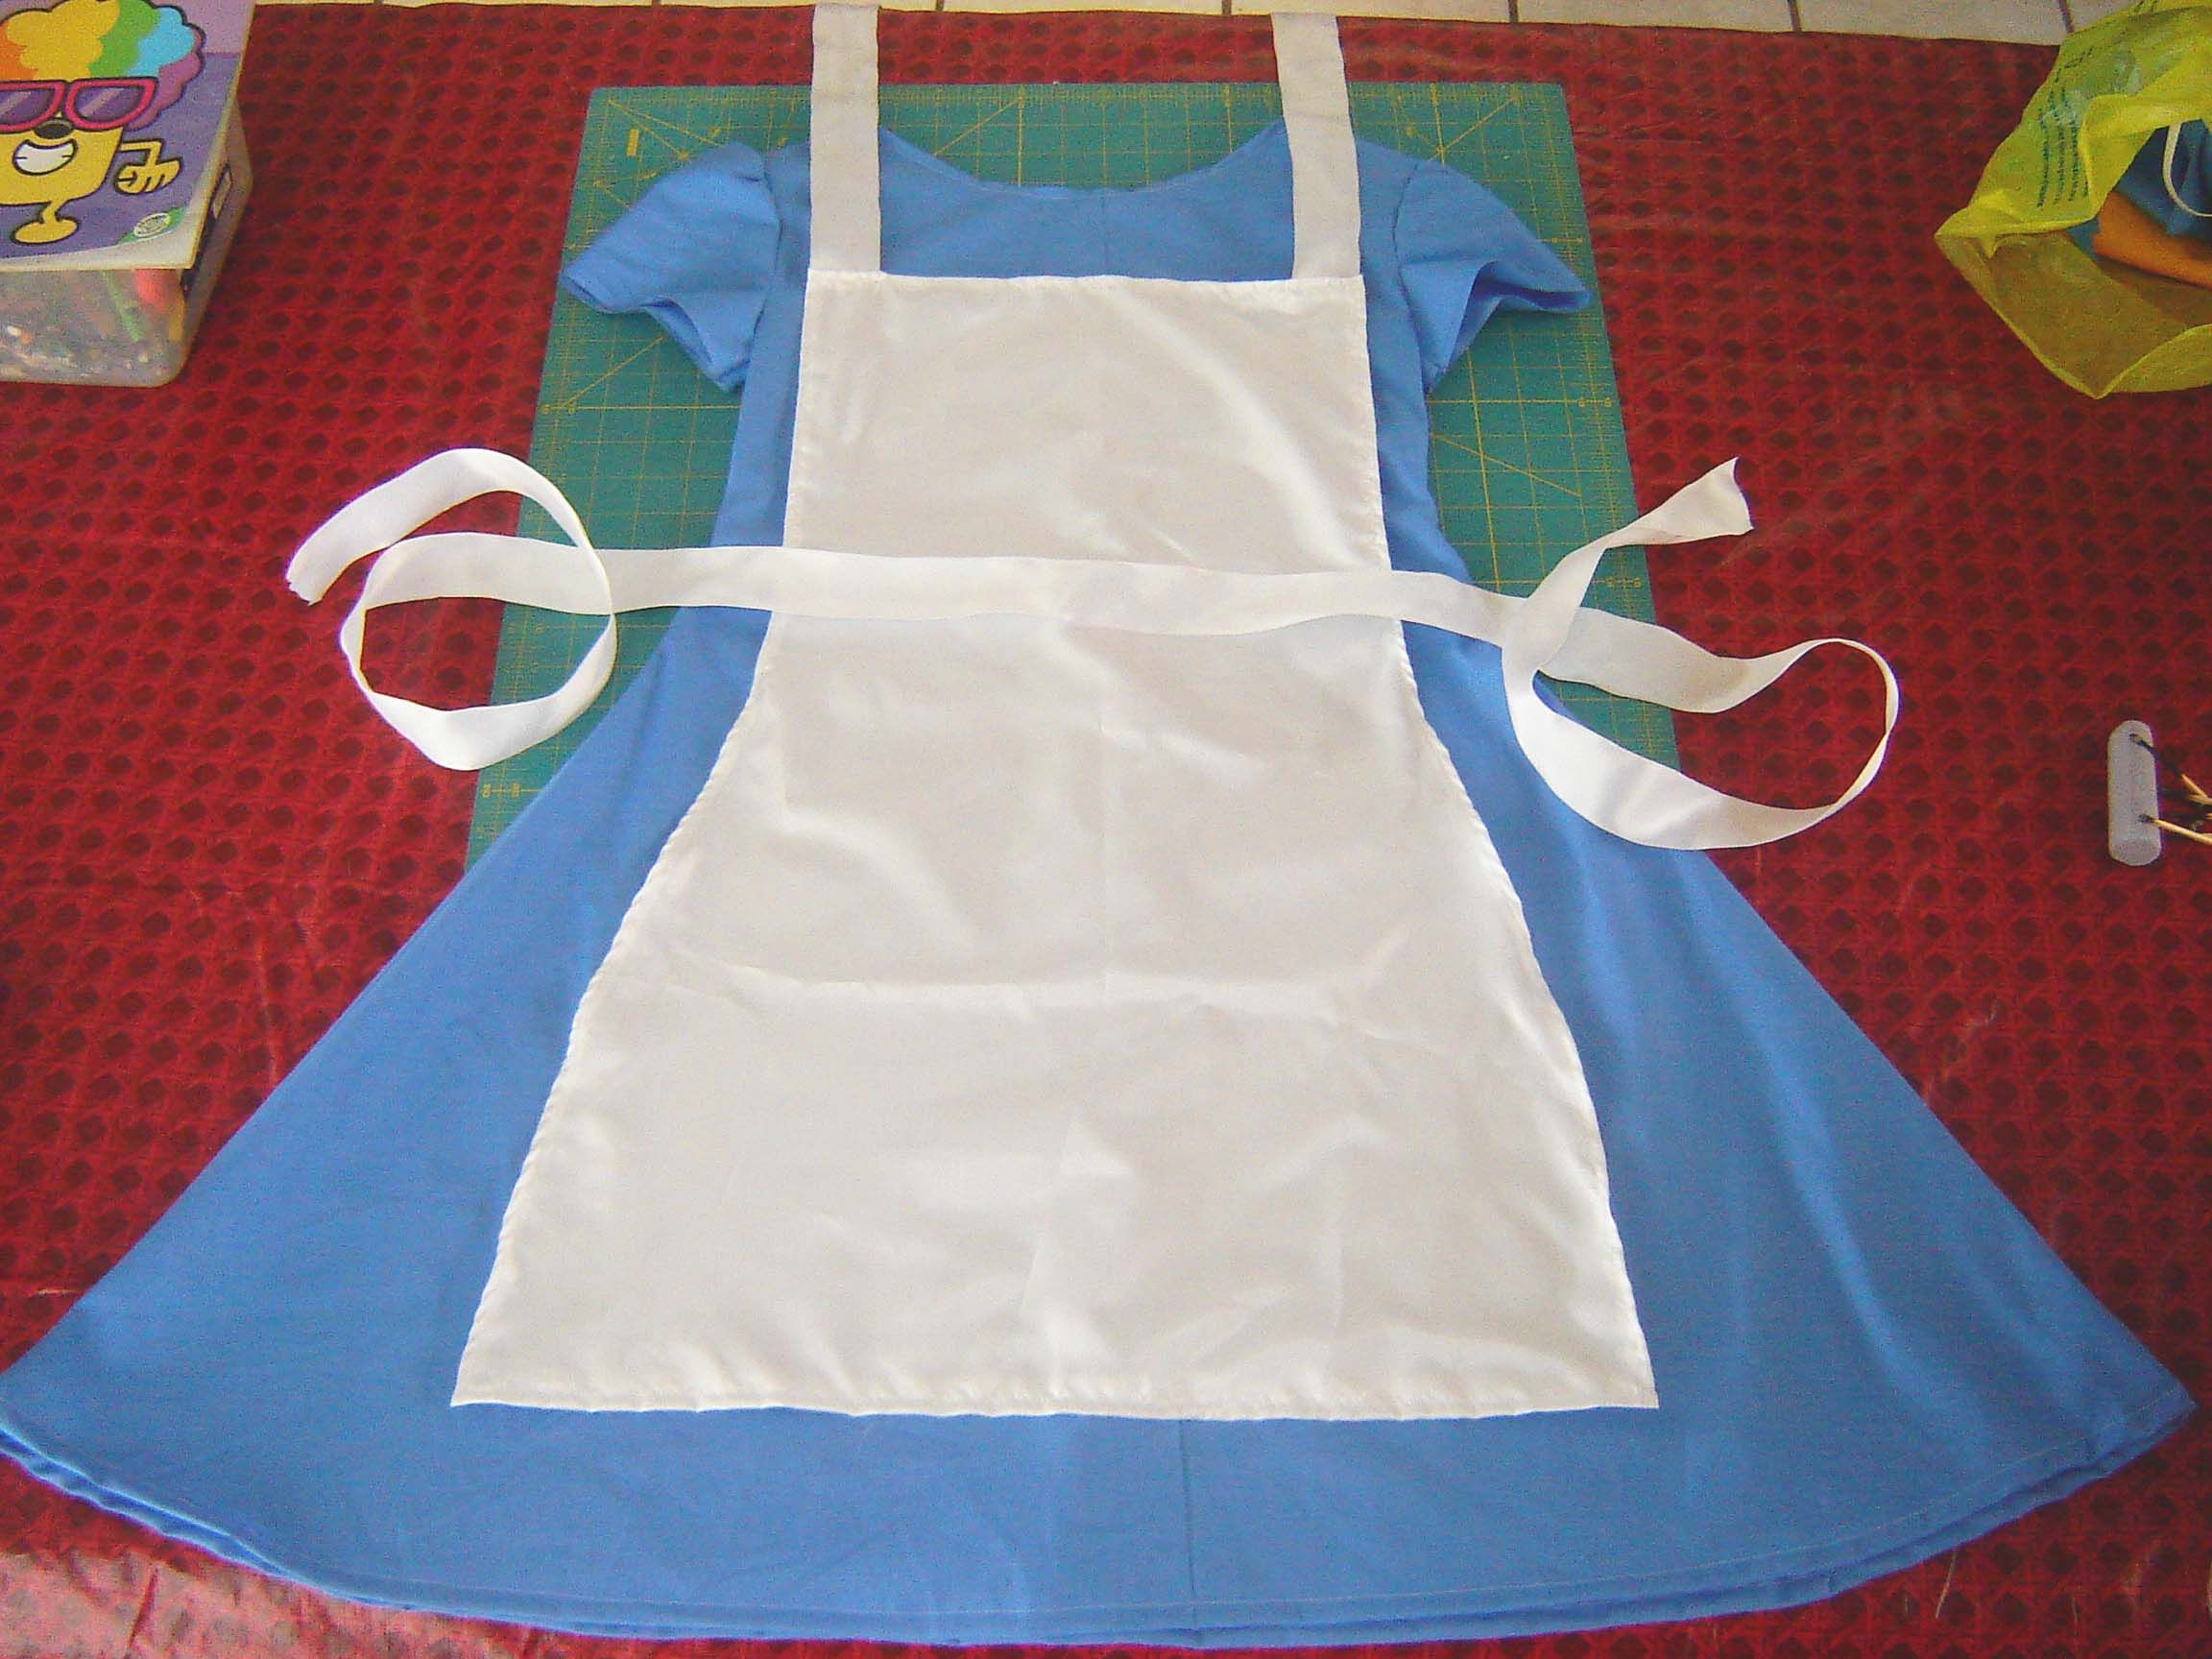 Quick inexpensive and simple diy alice in wonderland costume quick inexpensive and simple diy alice in wonderland costume instructions make the dress and apron on a budget in just 1 2 hours solutioingenieria Image collections